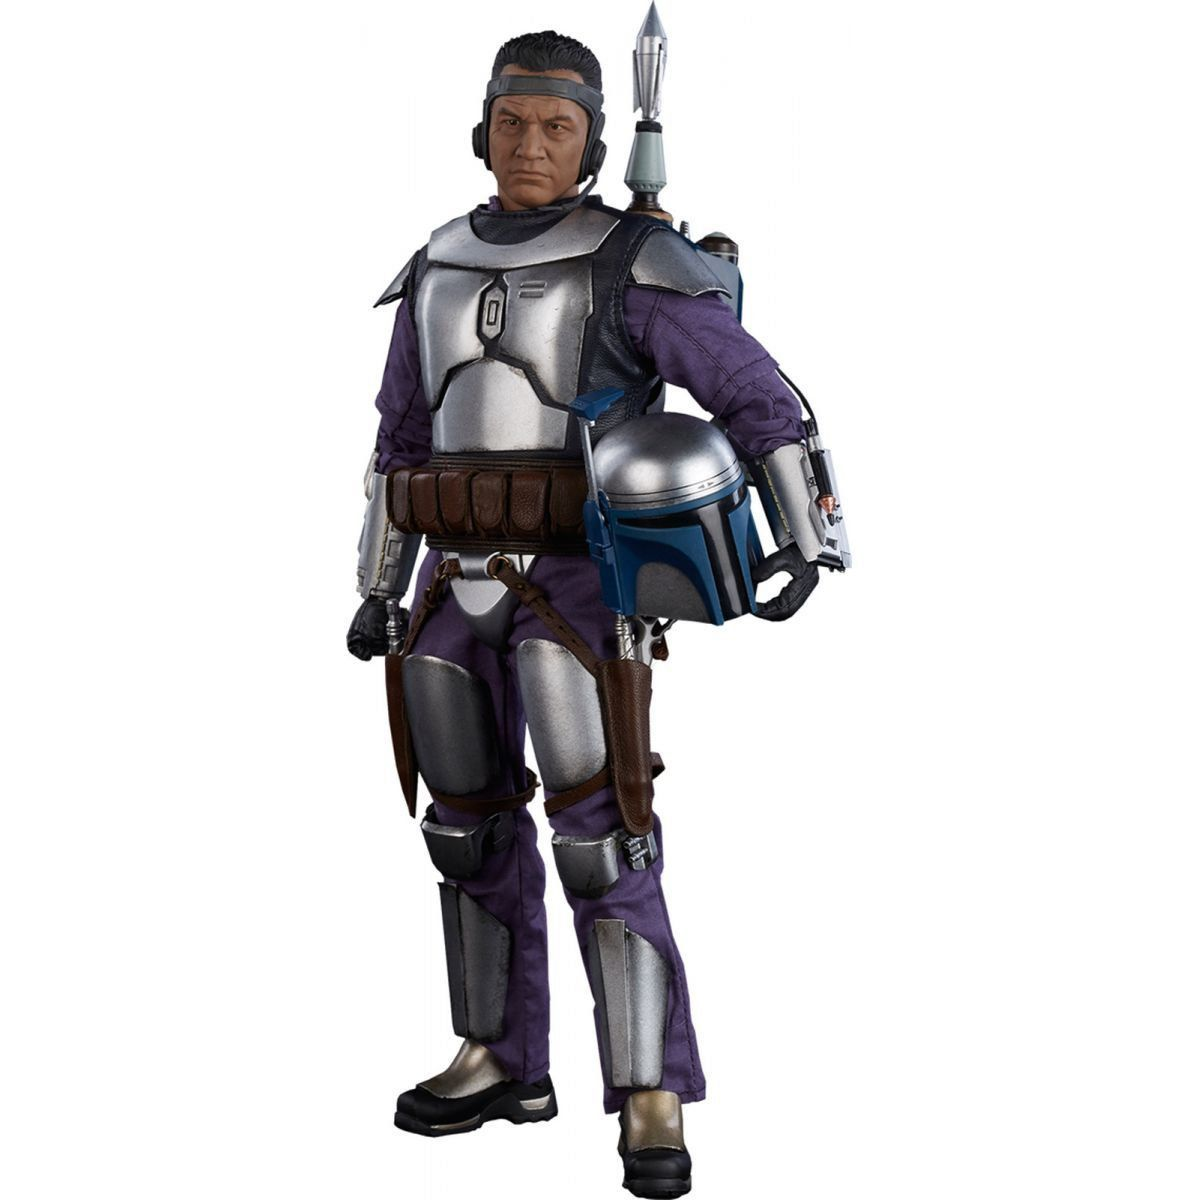 Boneco Jango Fett: Star Wars Exclusive Escala 1/6 - Sideshow